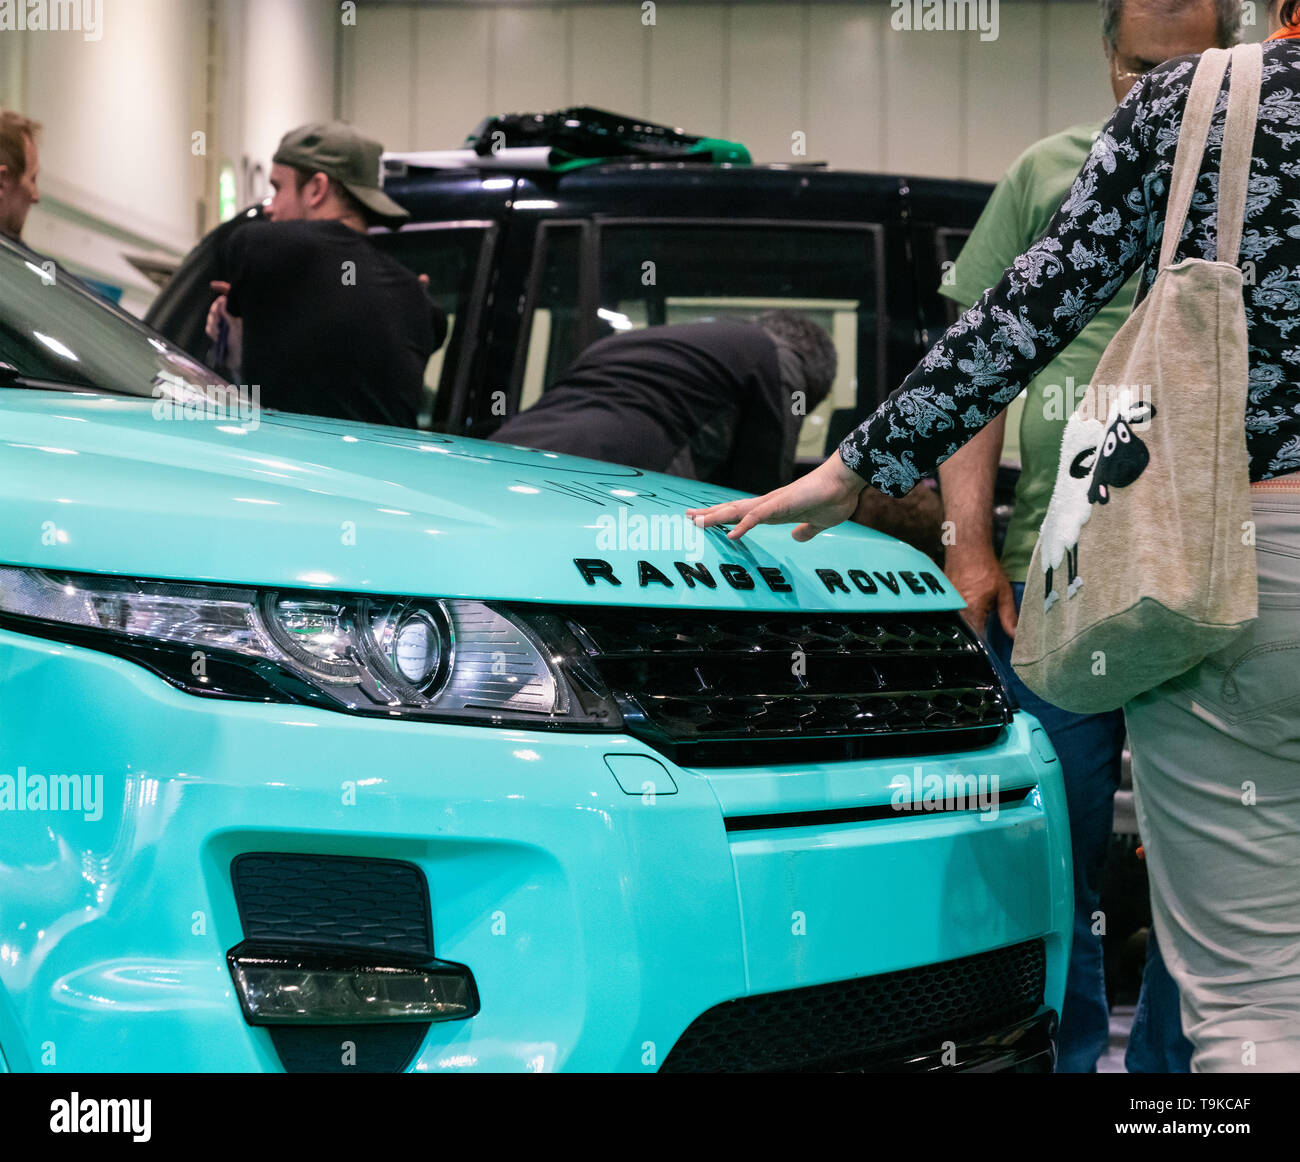 18th May 2019. London, UK. A woman touches elegant Range Rover Evoque model at London Motor Show 2019. - Stock Image